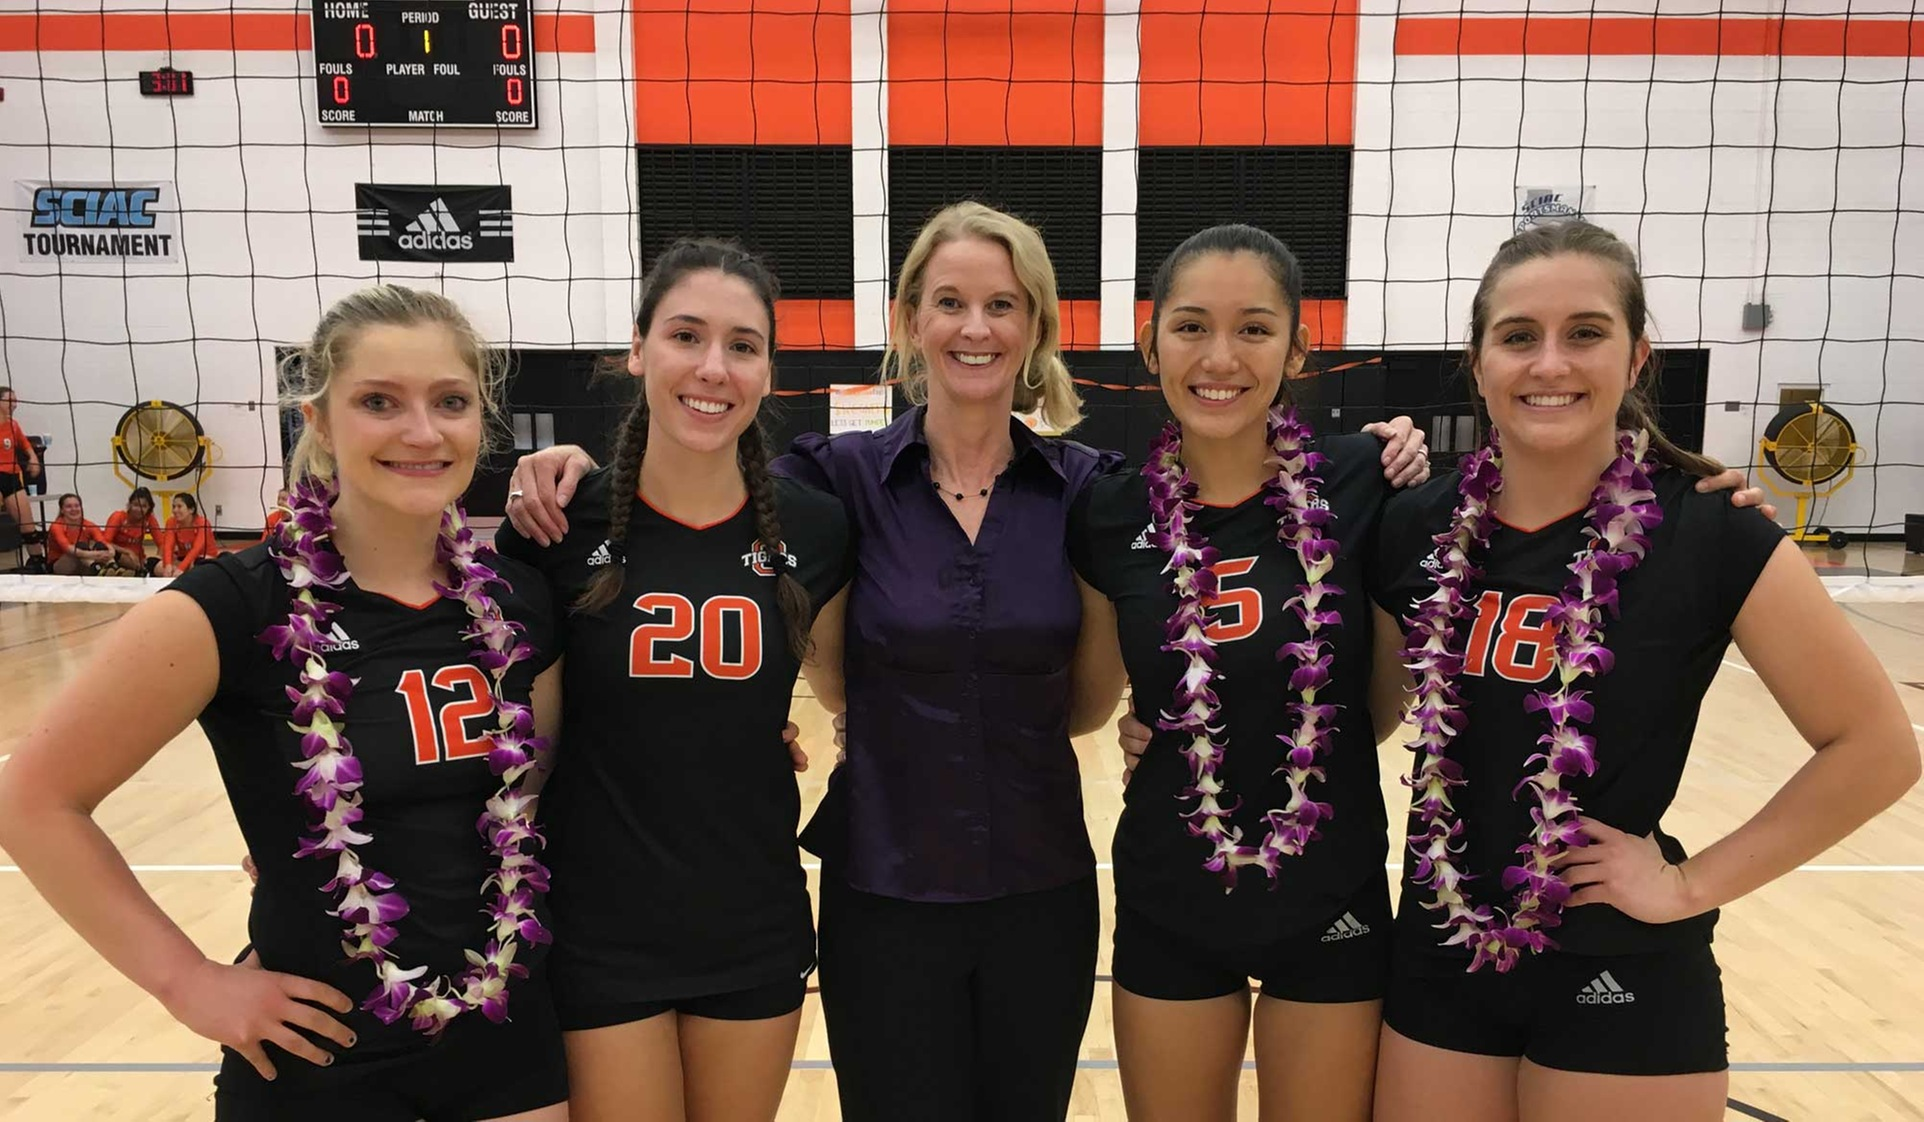 Oxy Sweeps Caltech on Senior Day